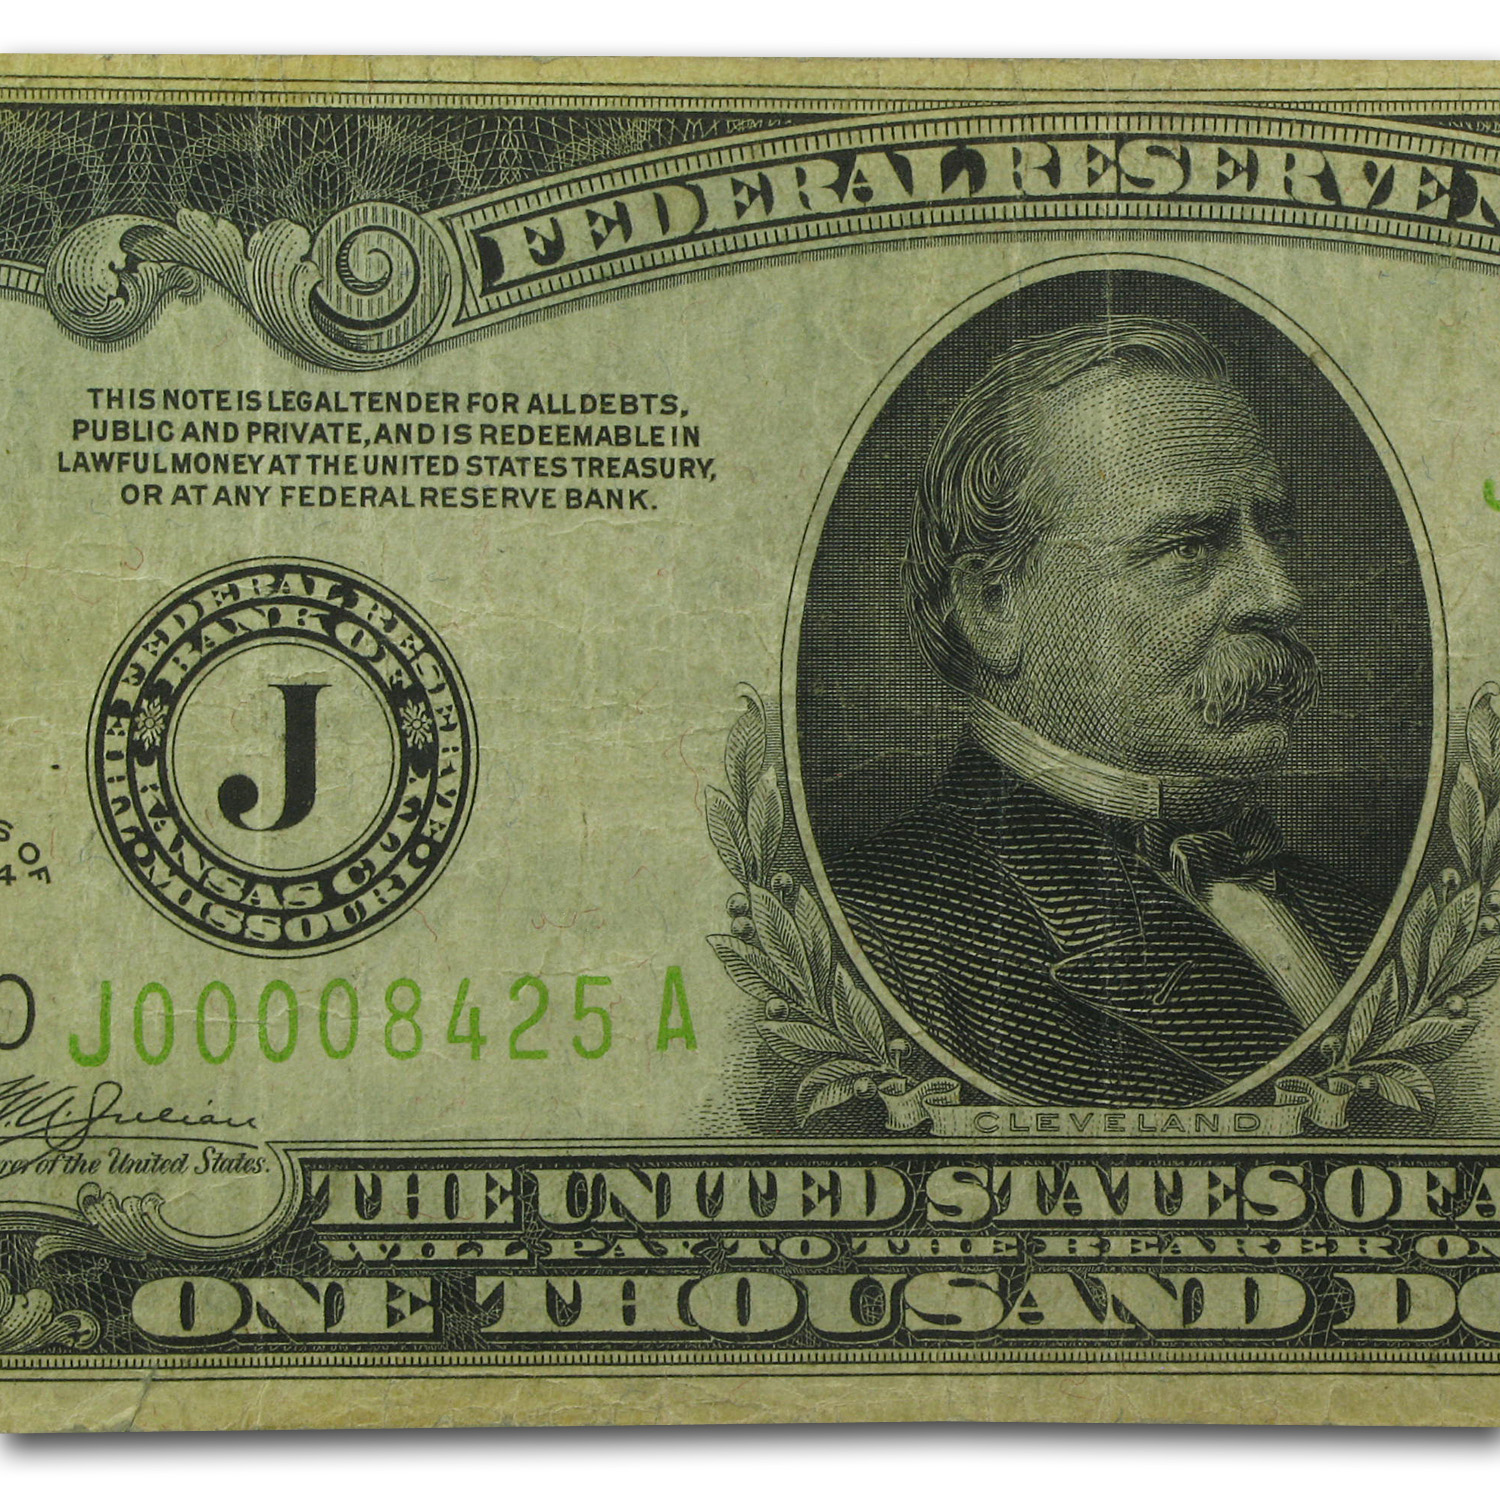 1934 (J-Kansas City) $1,000 FRN (Very Fine)